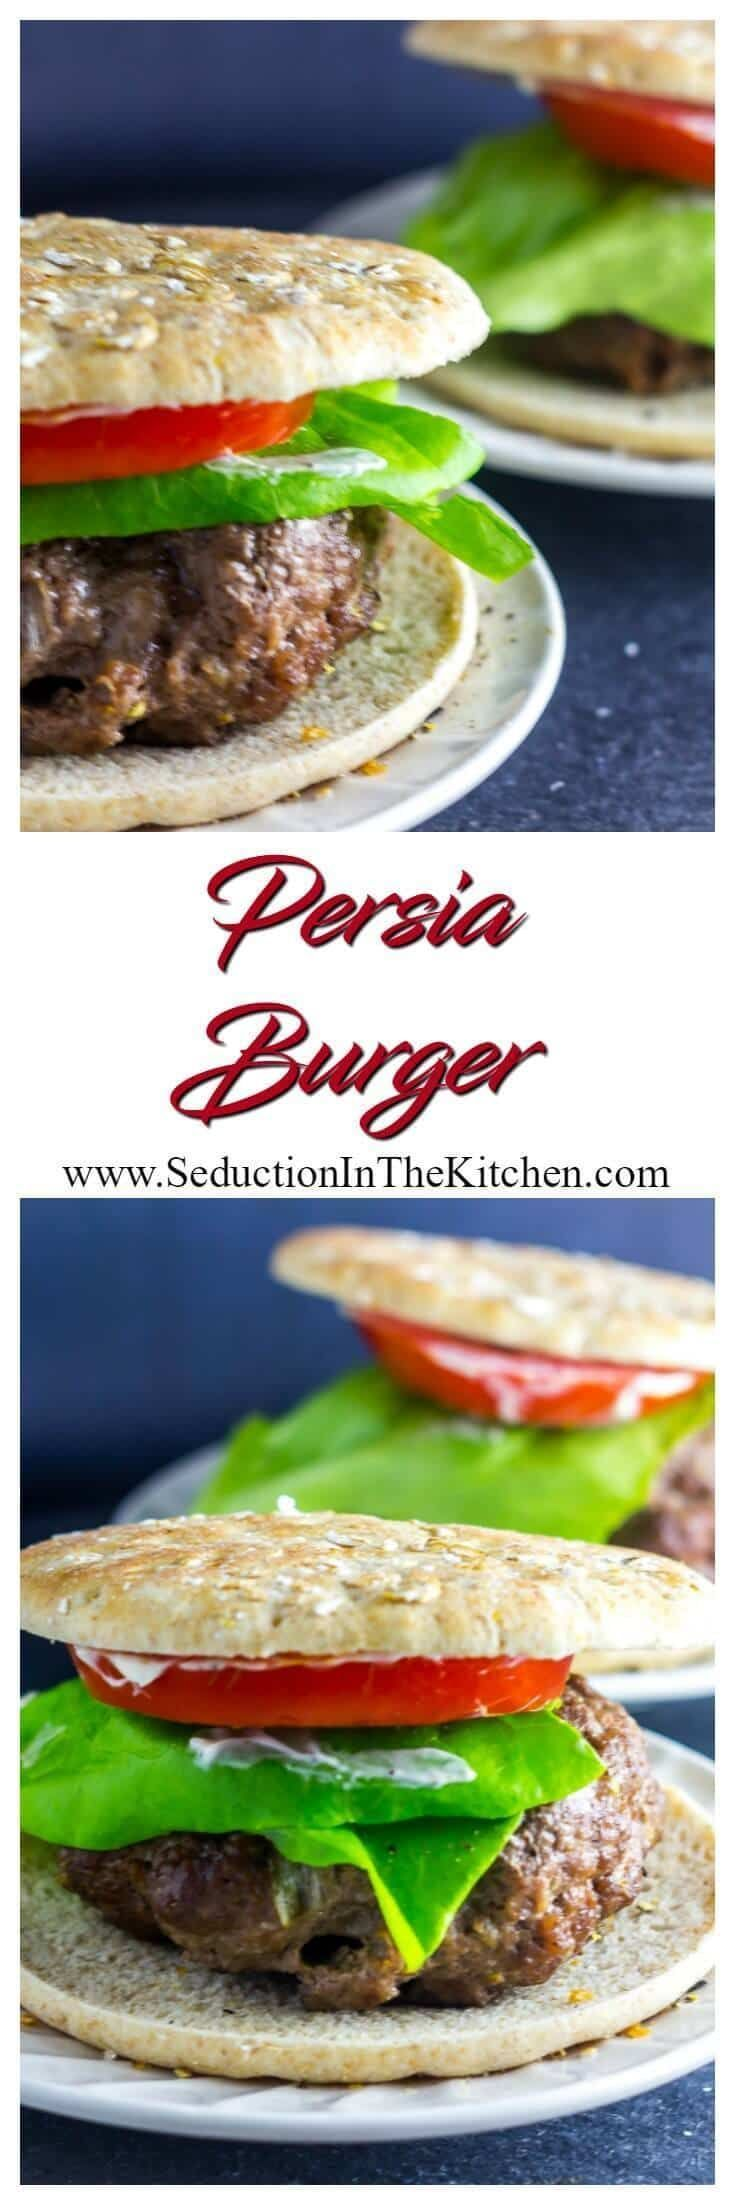 The #Persia #Burger inspired by Persian meat #kebabs. Onion and meat along with spices grilled together then topped off with a #roastedgarlic #lemon aioli. @CertAngusBeef #Burgermonth2017 via @SeductionRecipe